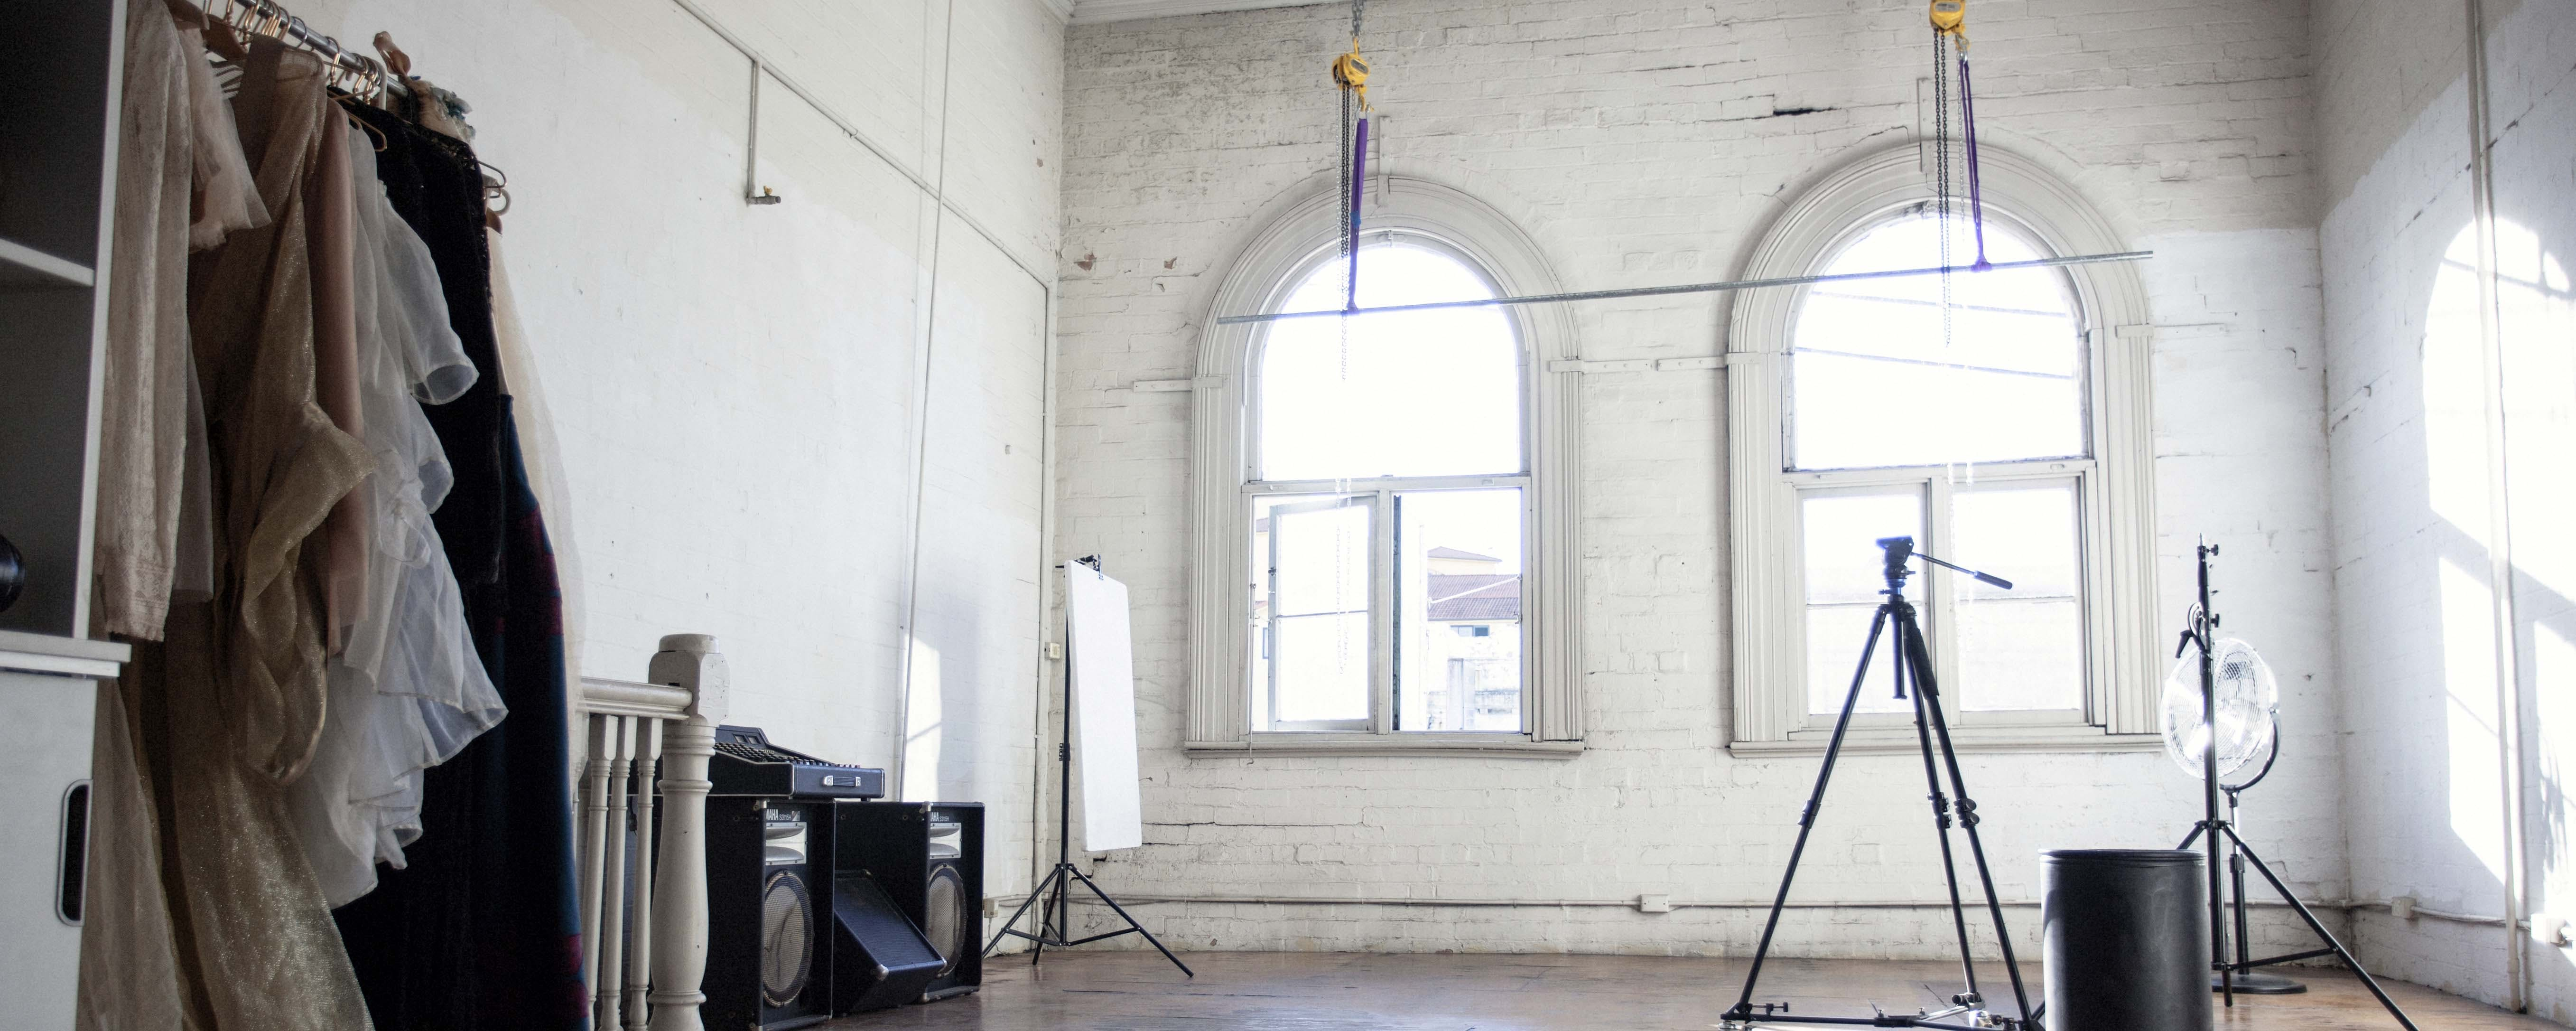 This studio is flooded with natural light, image 1